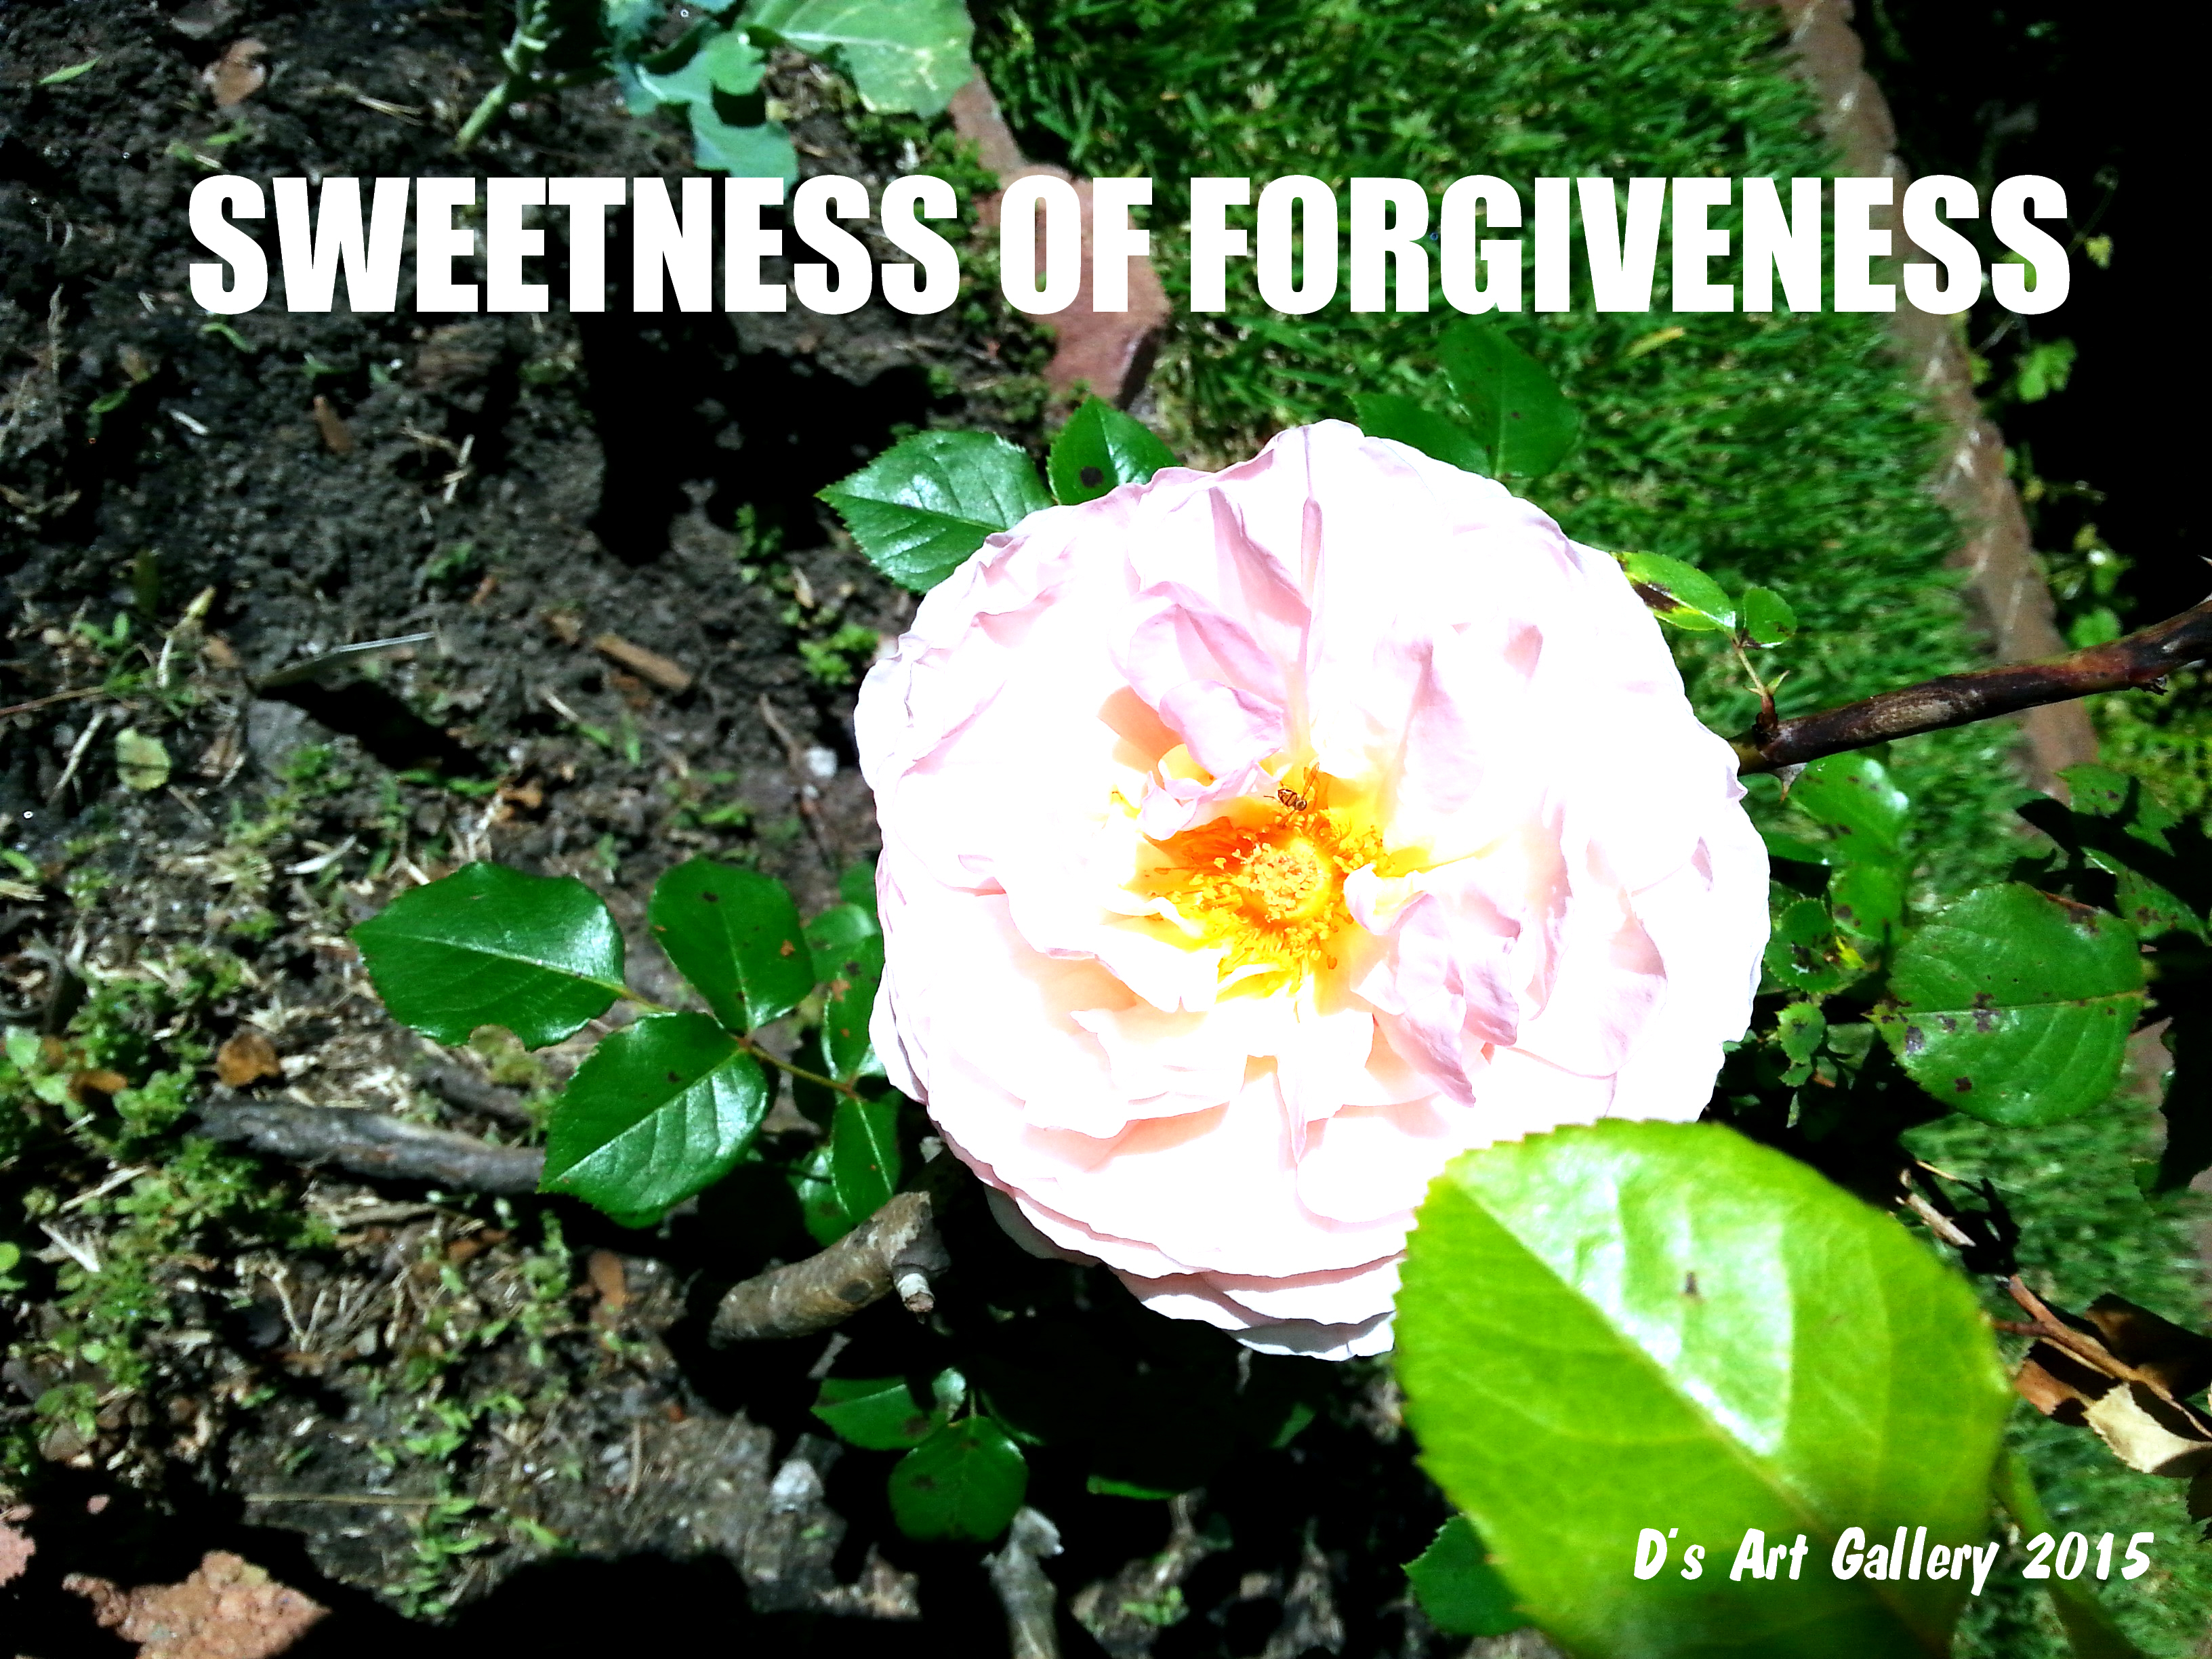 TASTE THE SWEETNESS OF FORGIVENESS (Photo by Pastor Davis)